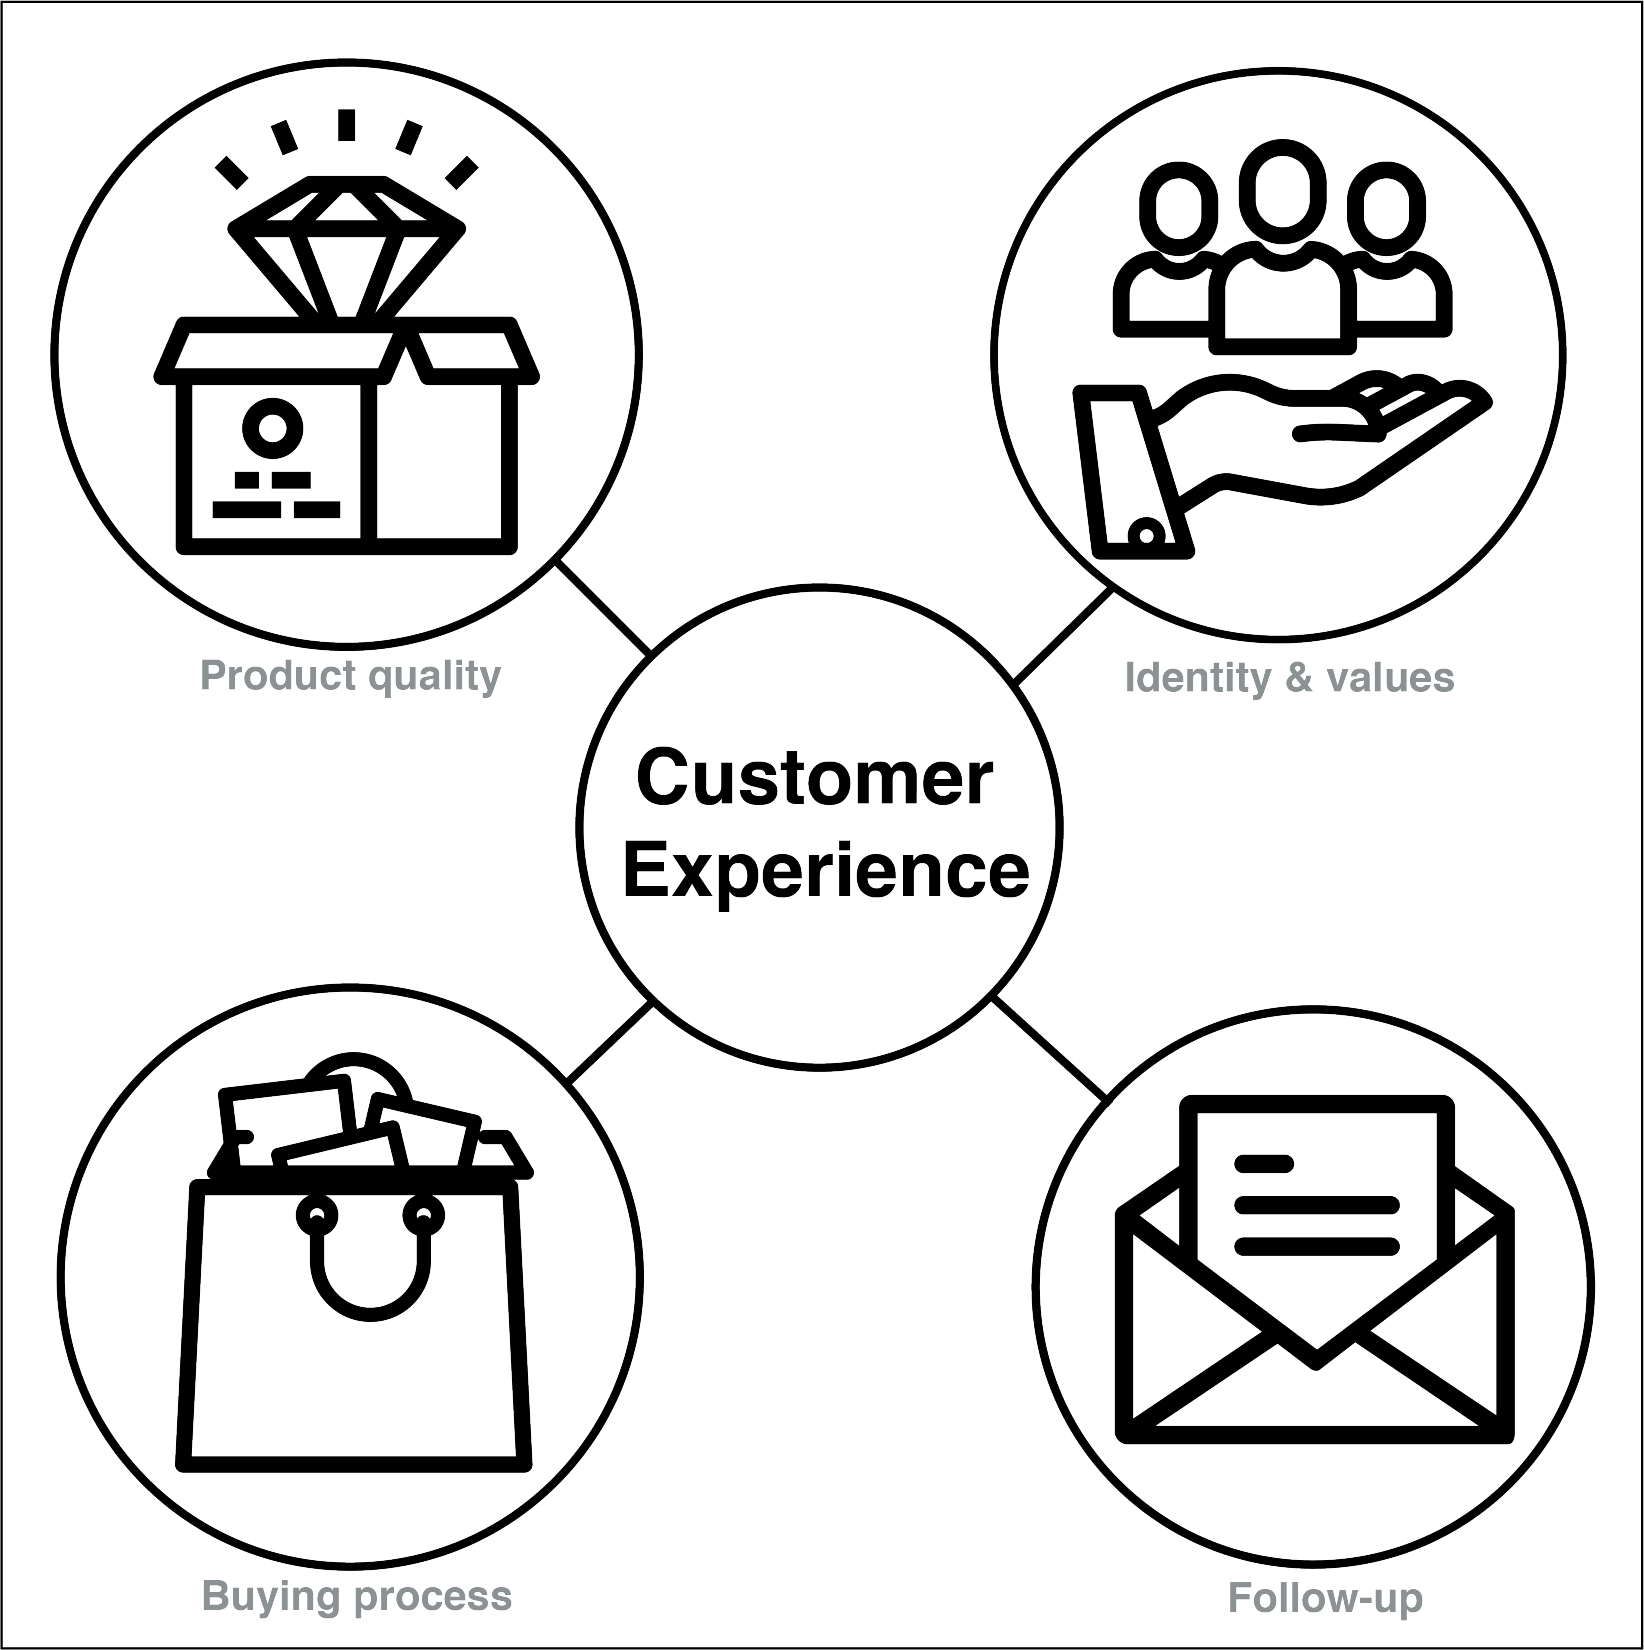 What is the most direct cause of customer loyalty